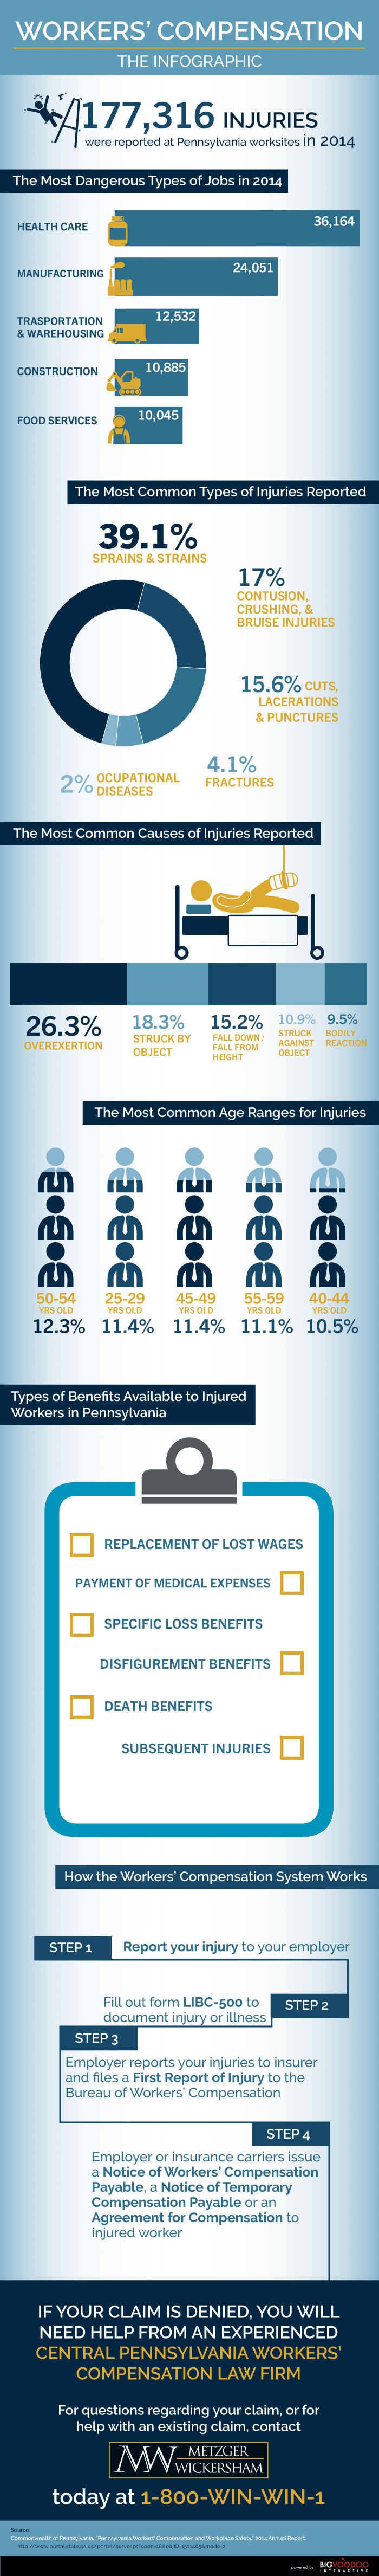 Workers' Compensation Statistics Infographic - Metzger Wickersham